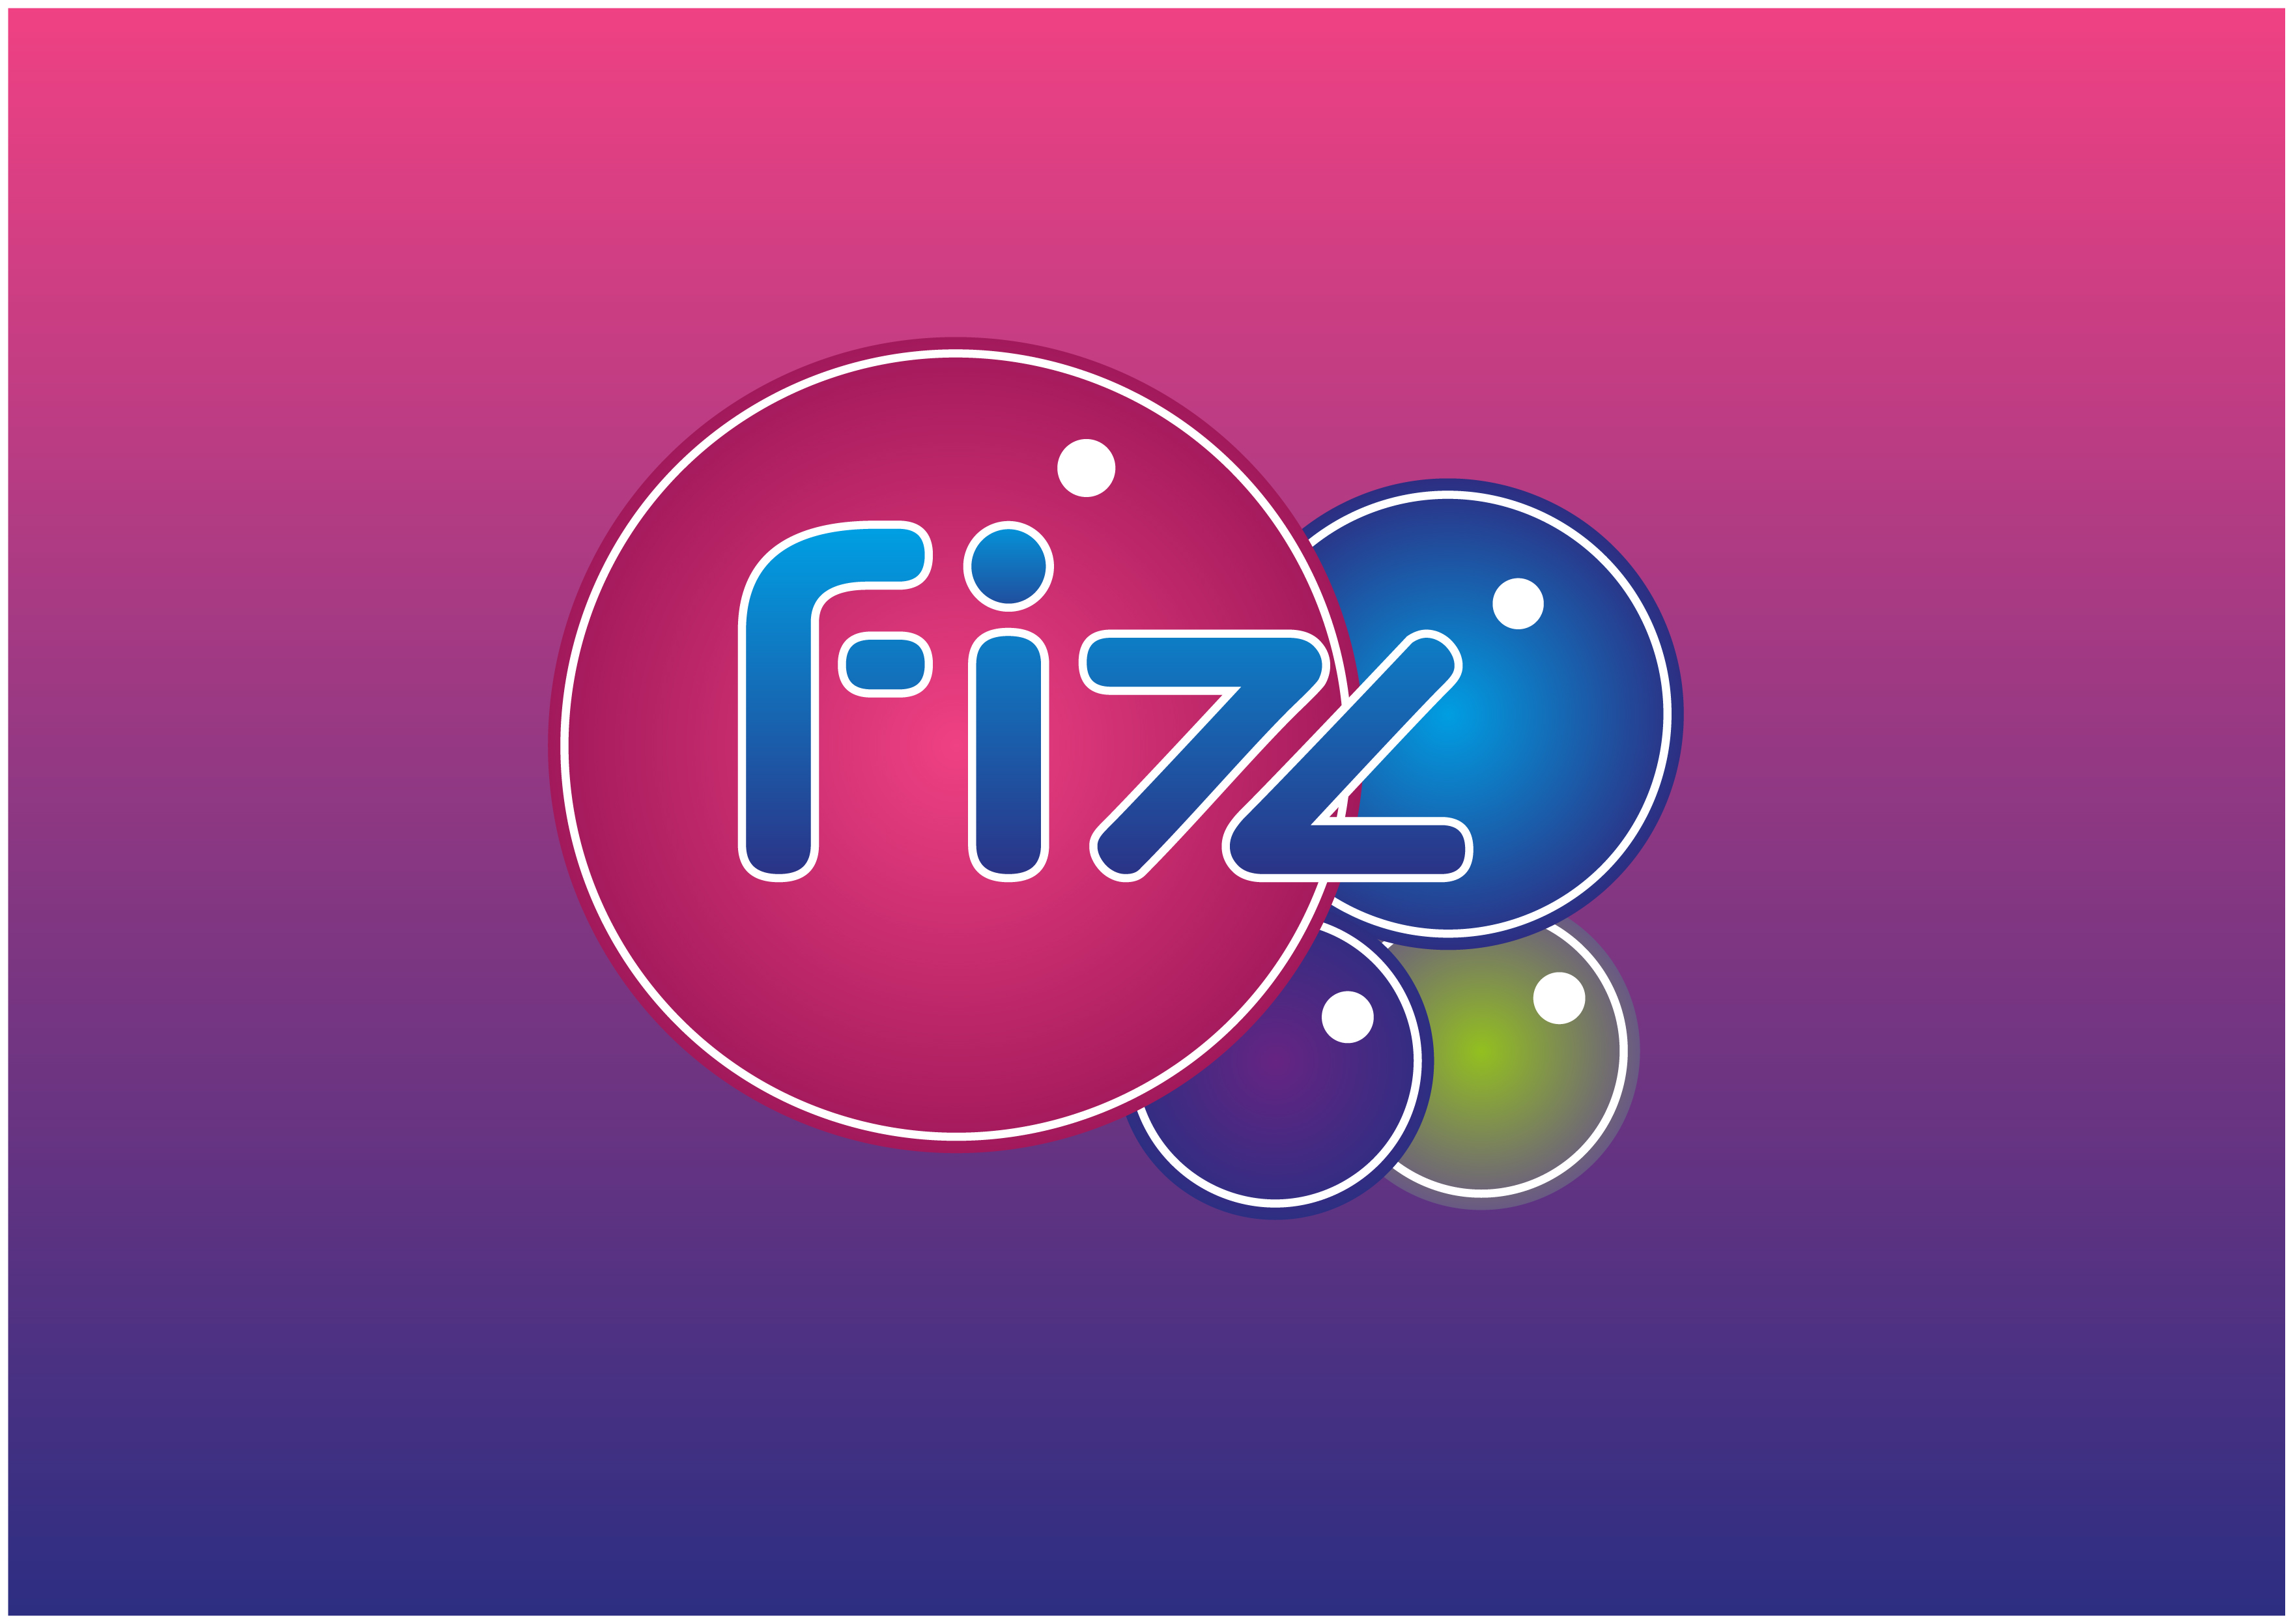 Logo Design by 3draw - Entry No. 70 in the Logo Design Contest Unique Logo Design Wanted for Fizz.